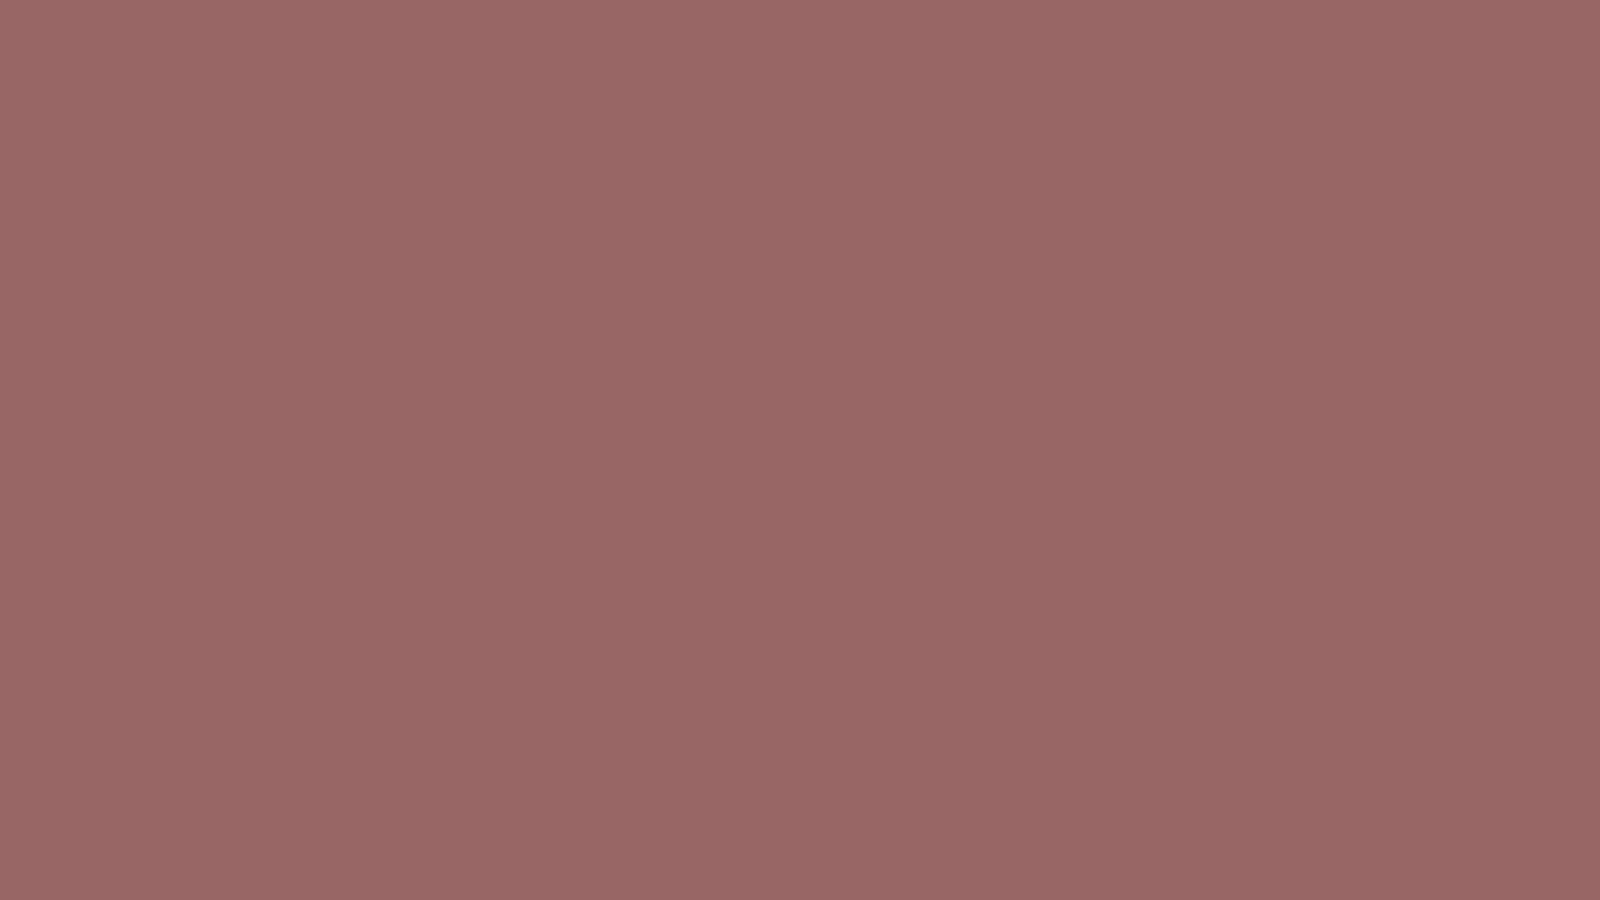 1600x900 Copper Rose Solid Color Background